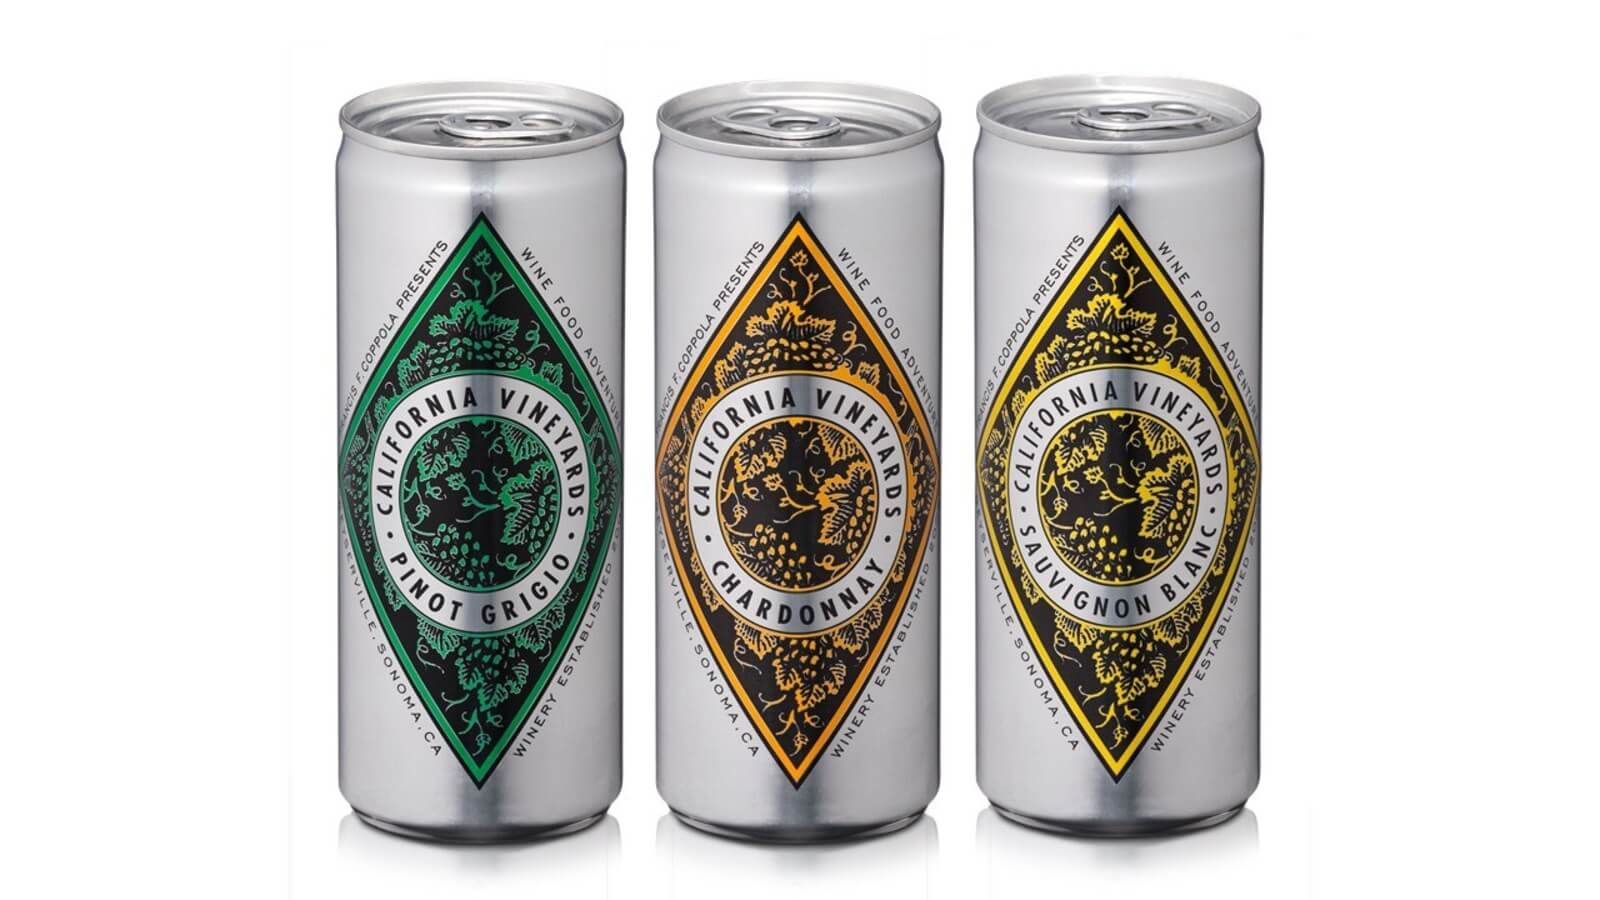 Francis Ford Coppola Winery launches Diamond Collection white wines in a can - What's Shakin' week of July 24